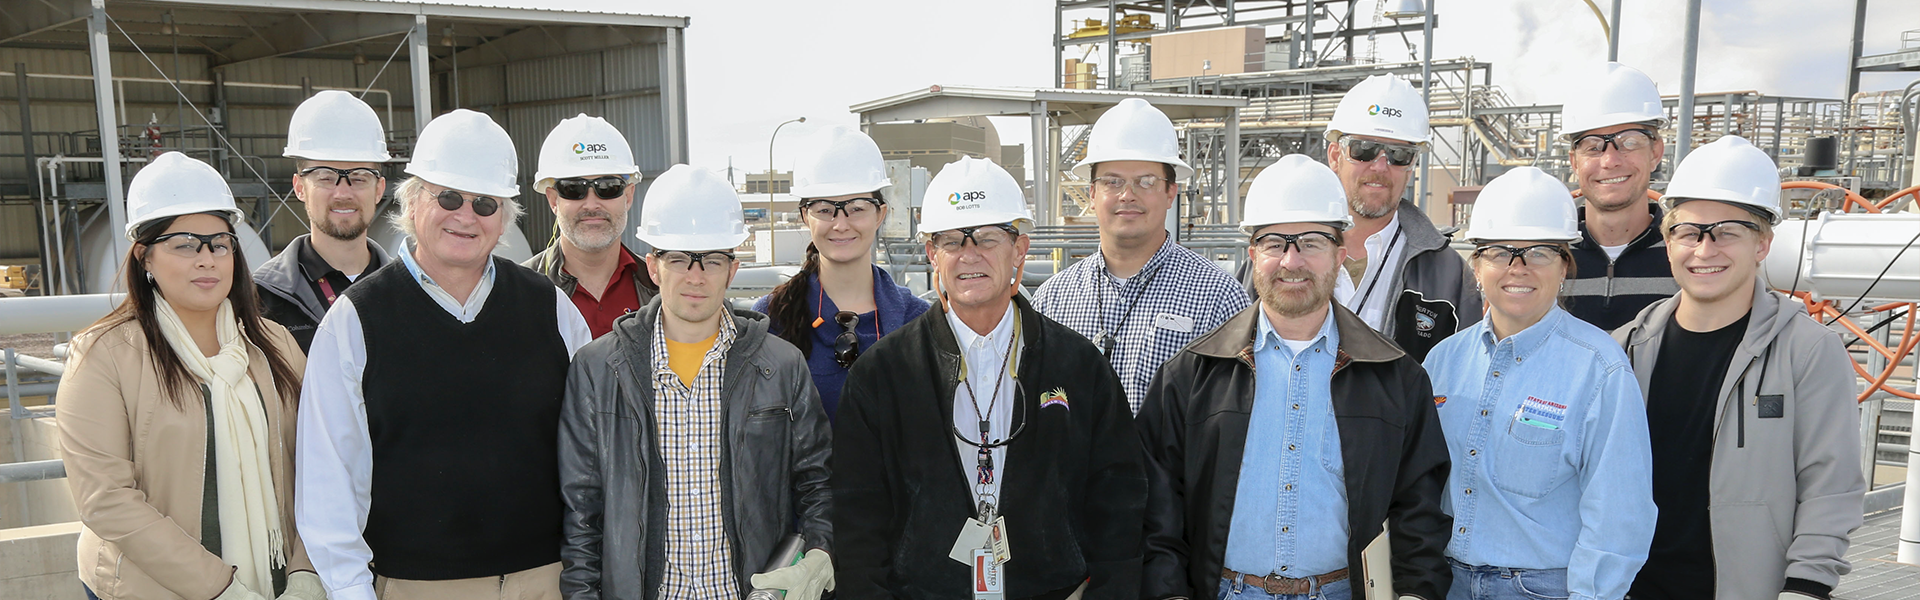 Water Resources staff tour Palo Verde Nuclear Generating Station